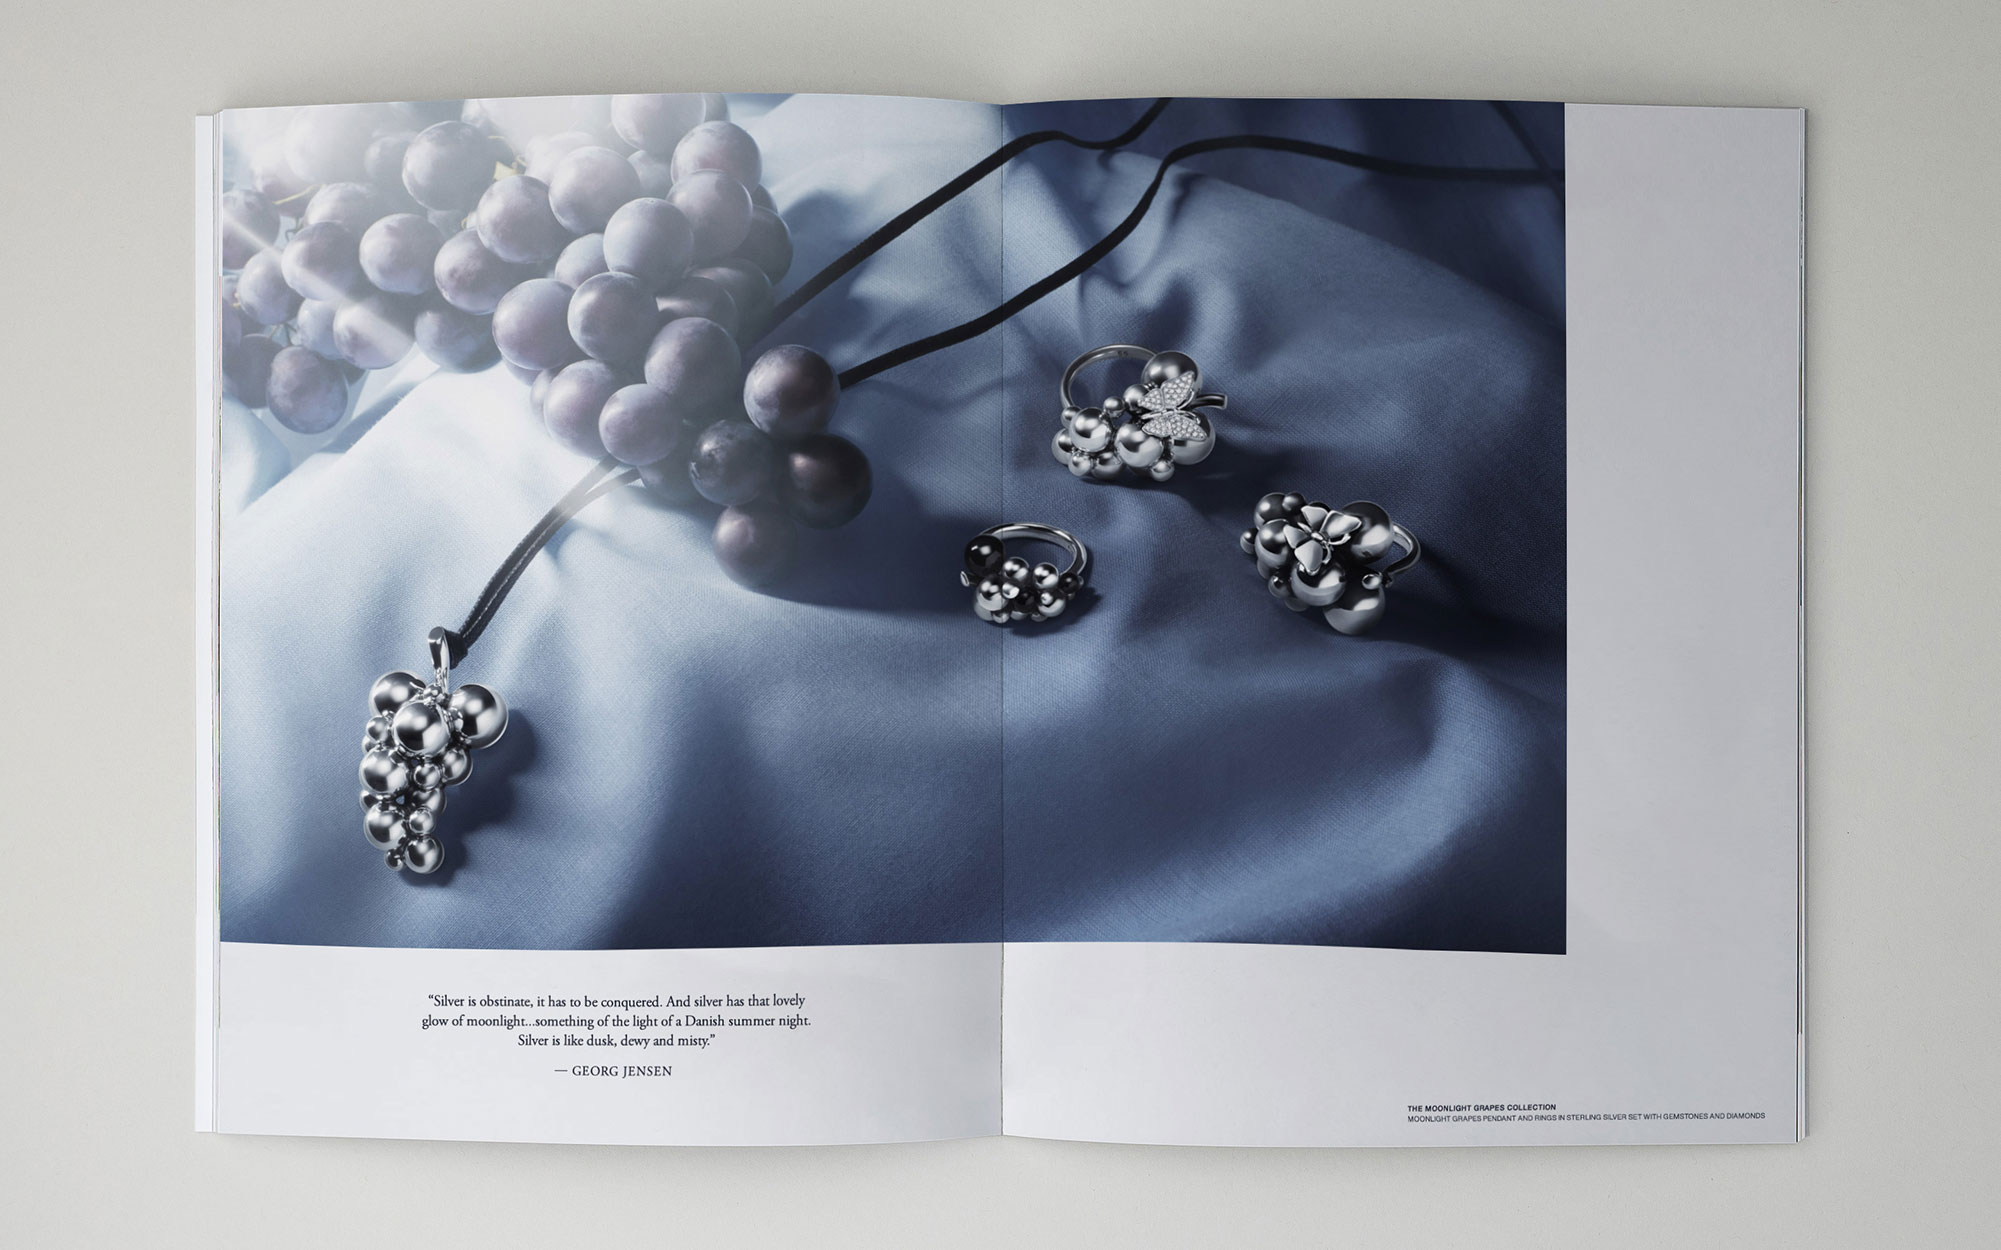 Still Life Art Direction and Graphic Design for Georg Jensen, Shot by Ines Dieleman